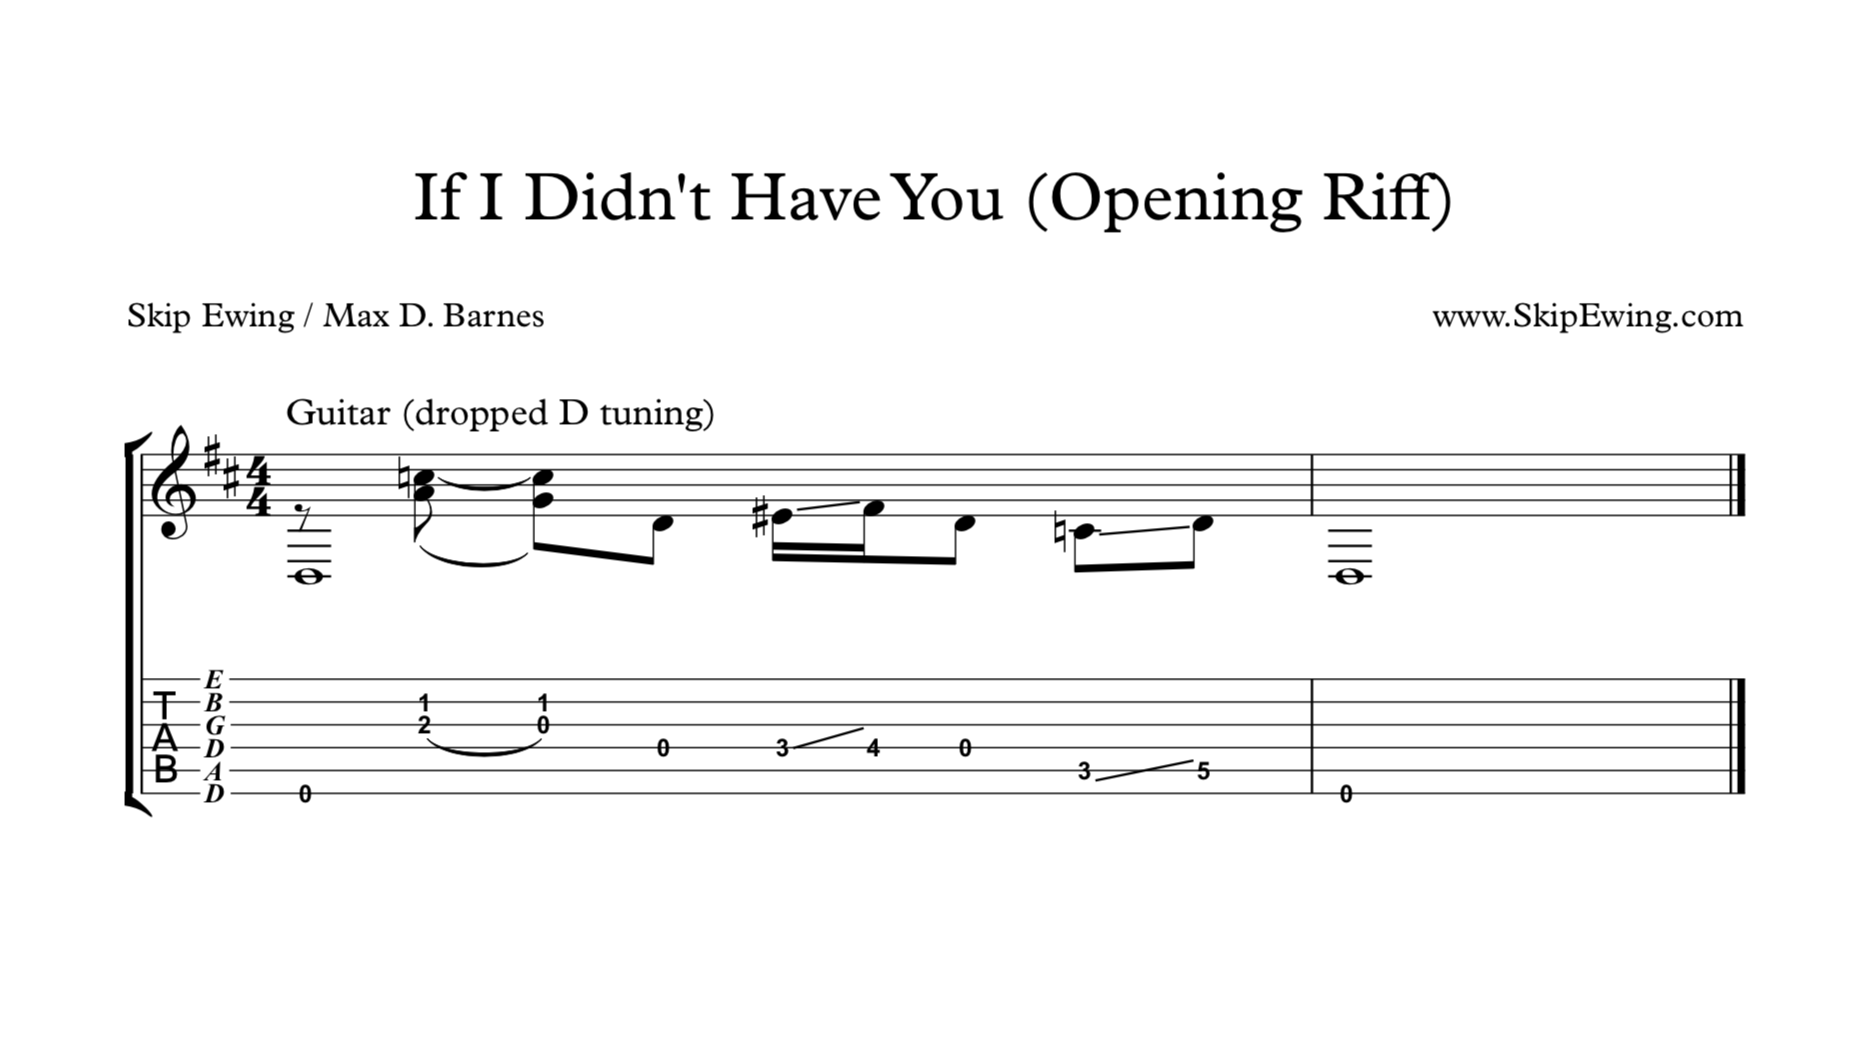 If I Didn't Have You (Opening Riff)